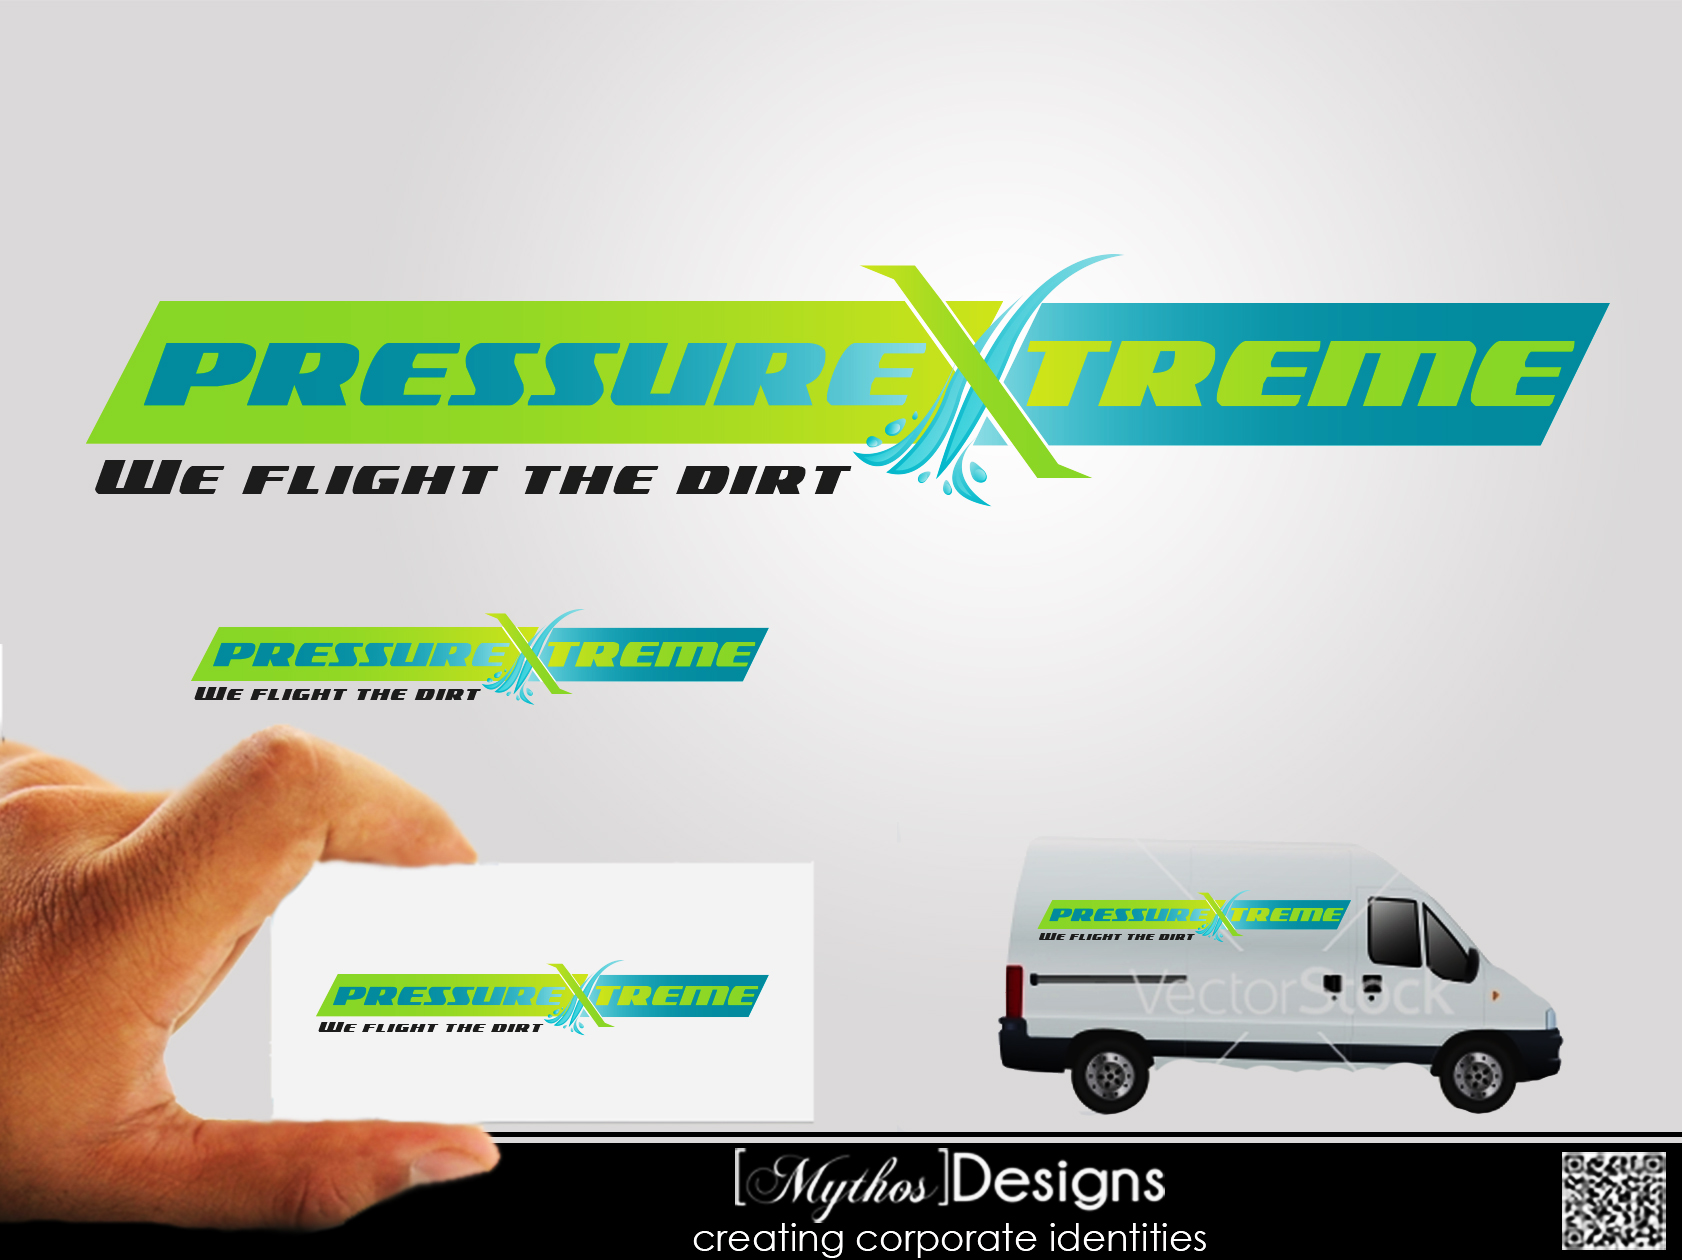 Logo Design by Mythos Designs - Entry No. 57 in the Logo Design Contest New Logo Design for PRESSUREXTREME.